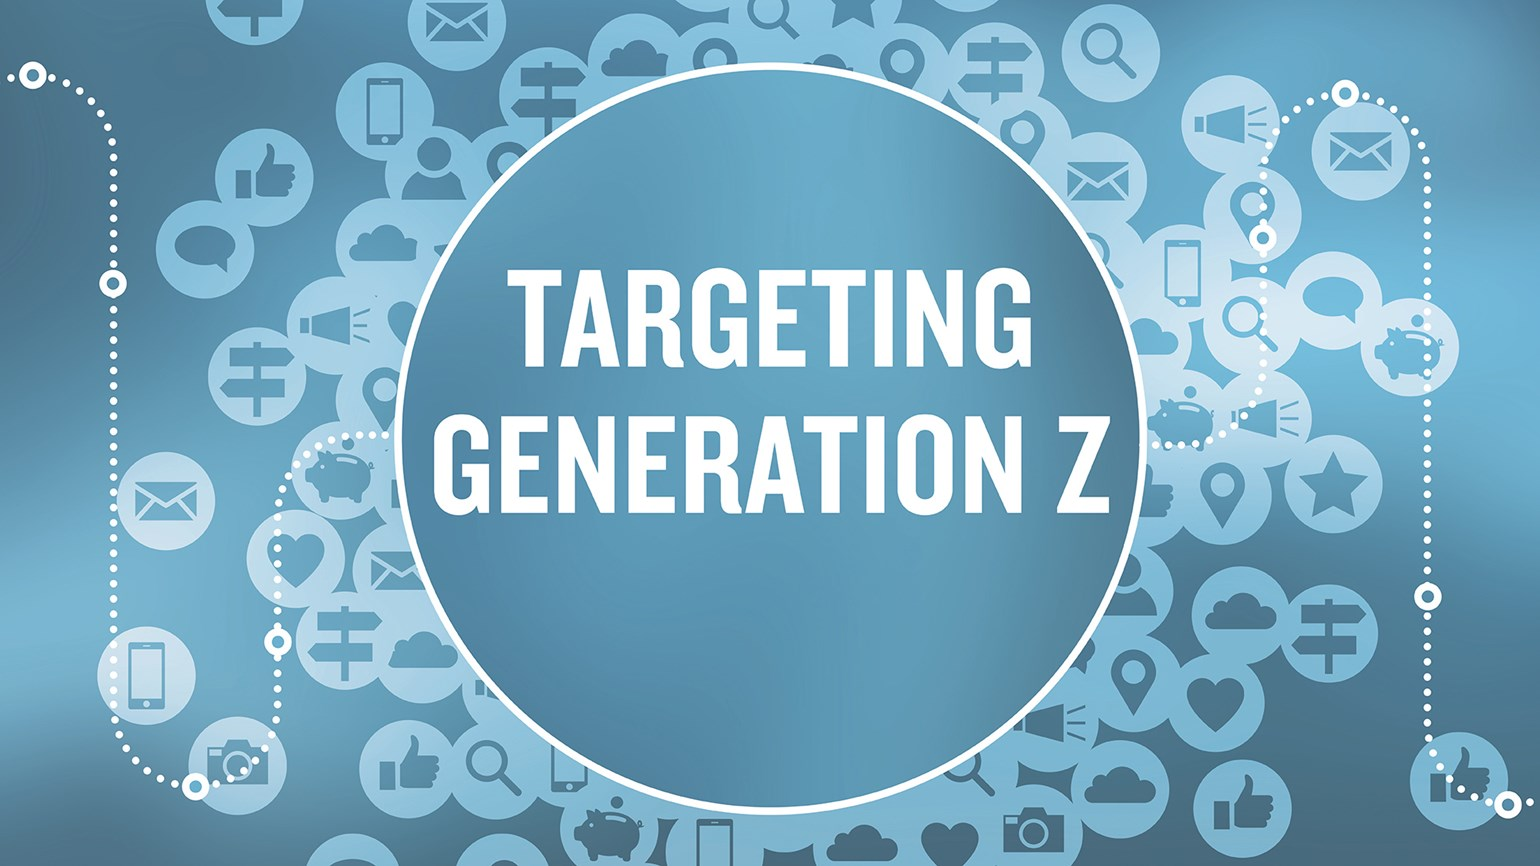 They're not millennials: Targeting Generation Z